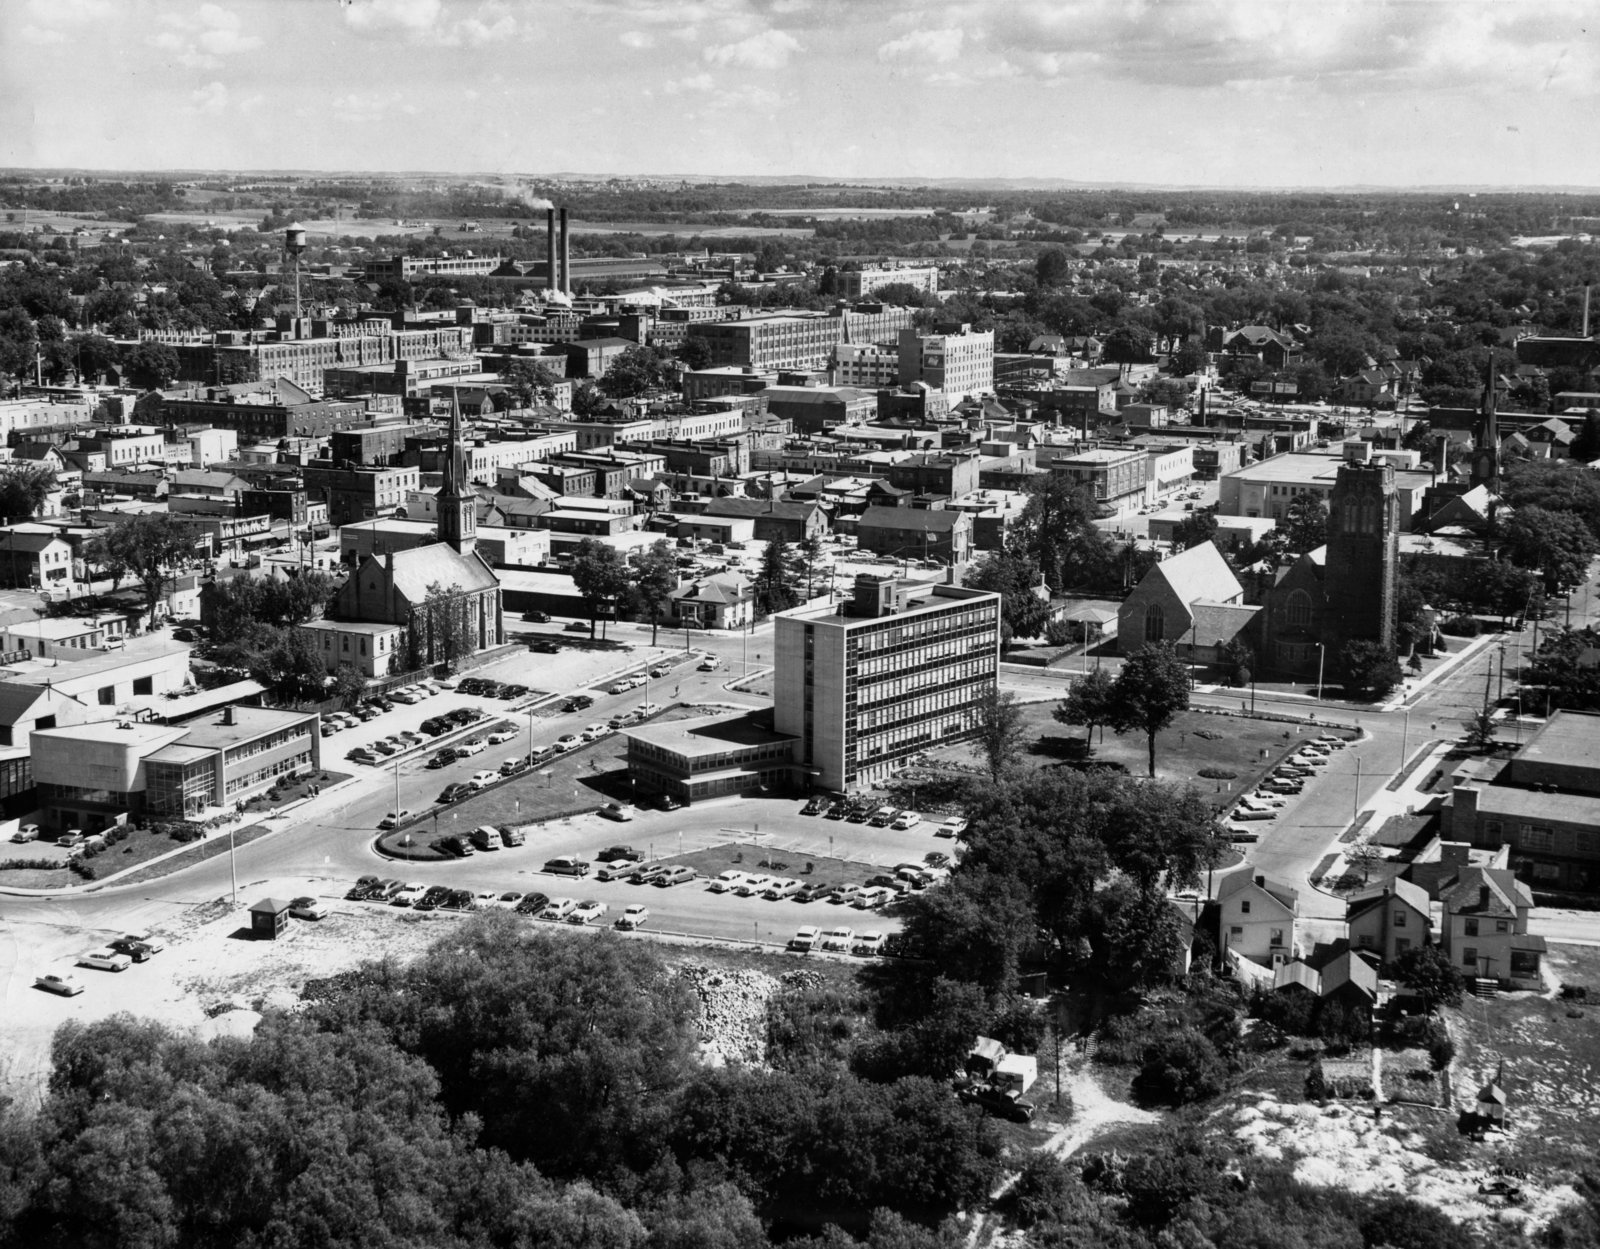 Lh2047 Aerial View City Hall Mclaughlin Library Oshawa Newspapers